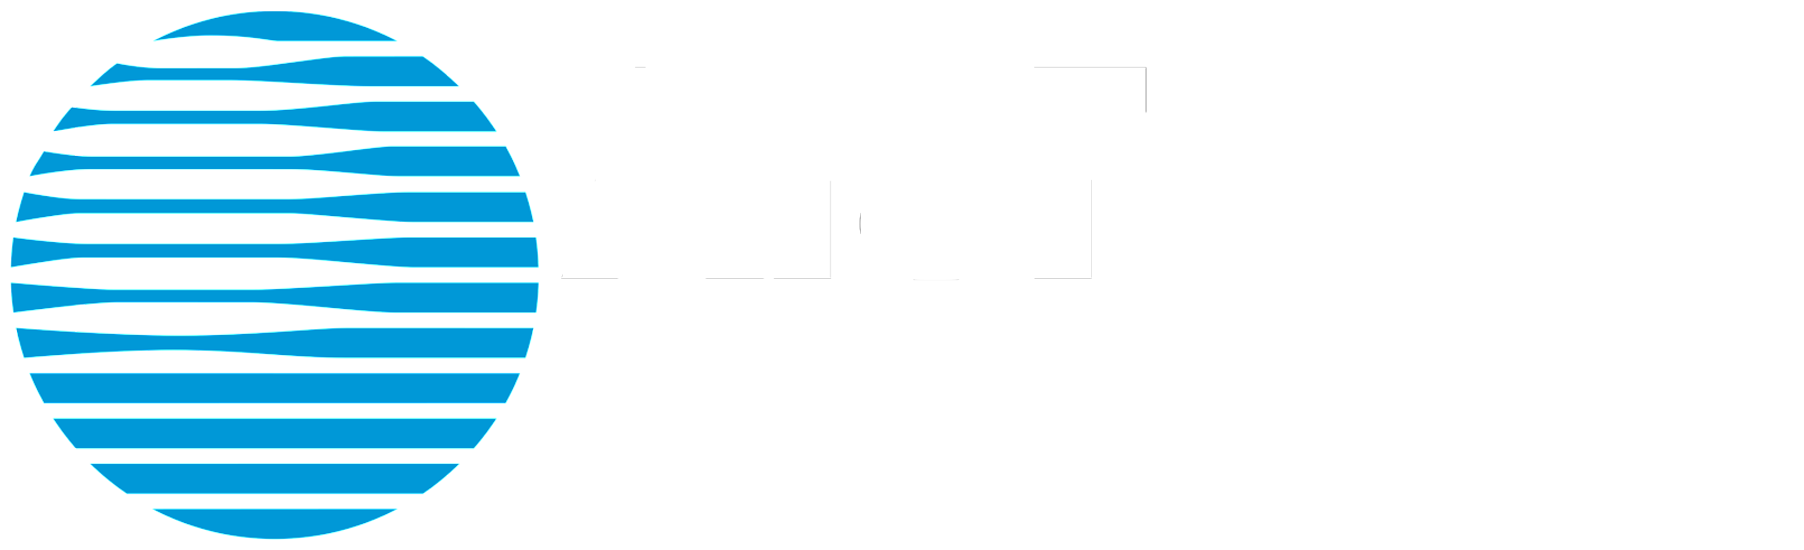 My name is Ken Meyering. I made this COUNTERFEIT AT&T Bell Laboratories logo. This is COMPUTATIONAL DERIVATIVE DIGITAL ART. This LOGO is a combination of a real AT&T Logo and the Bell Laboratories Logo. https://media.define.com/COUNTERFEIT_Bell_Labs_logo_1984-1995.jpg